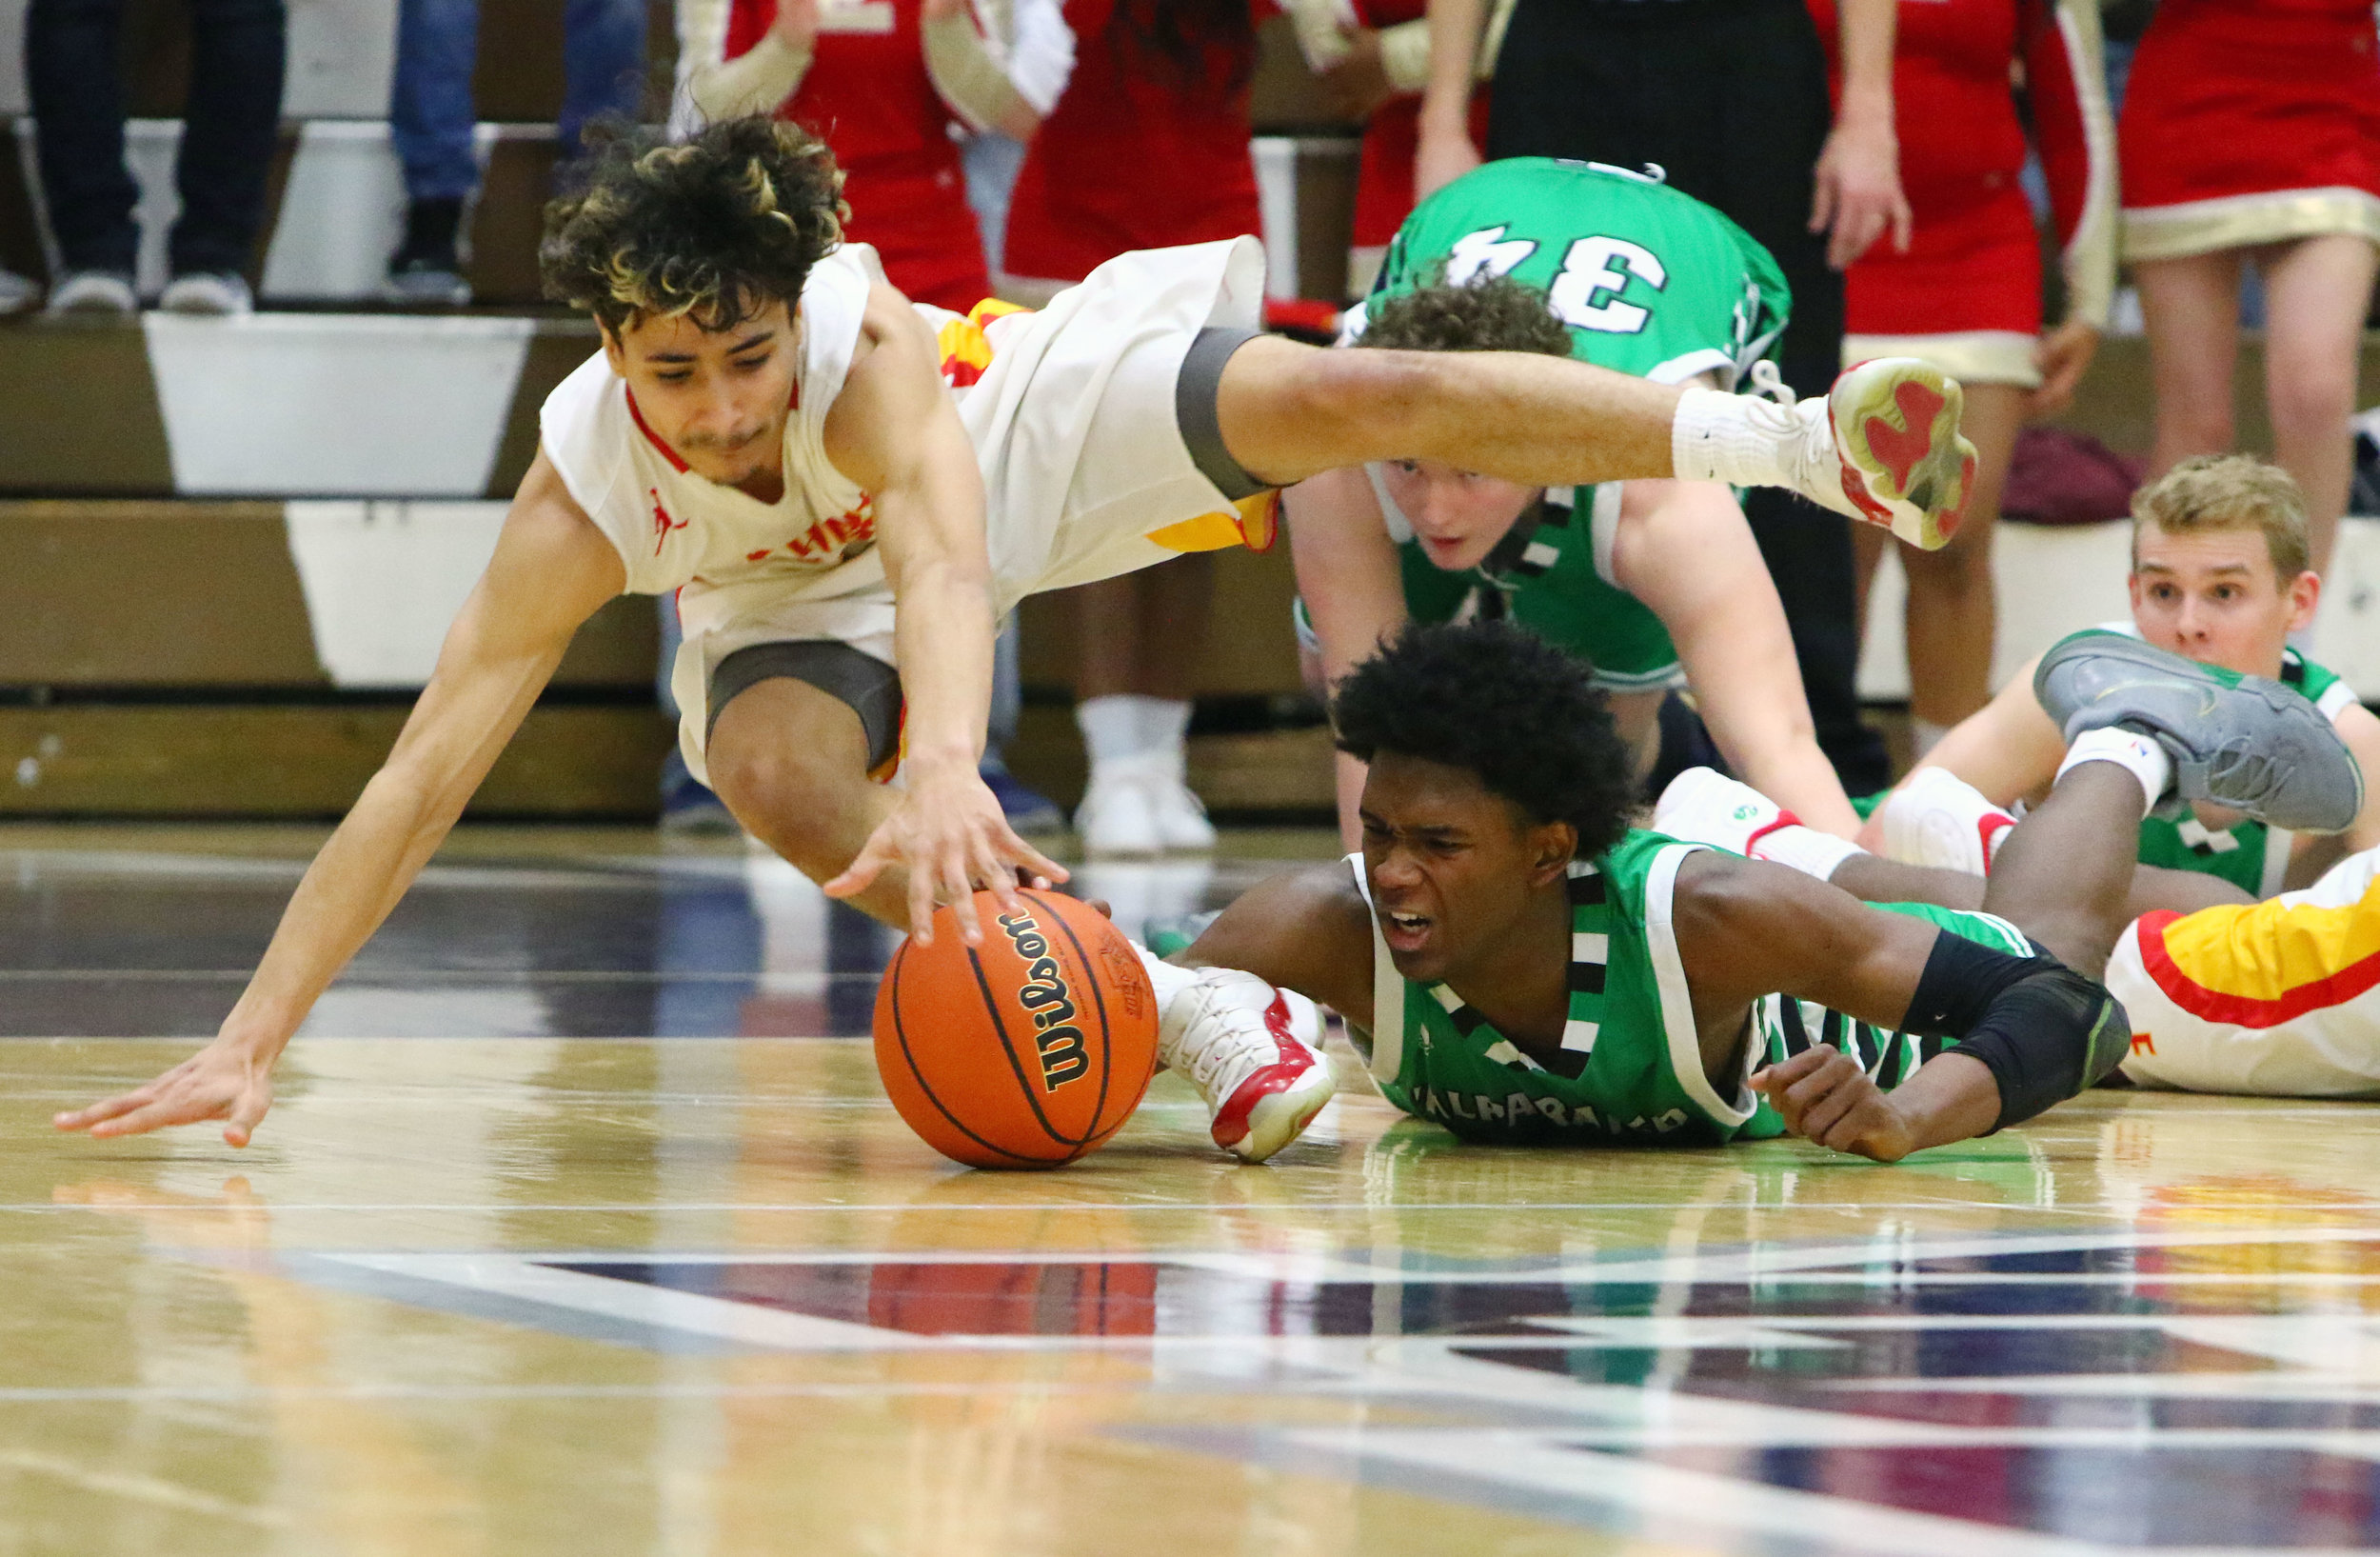 Valparaiso's Brandon Newman, right, and Elkhart Memorial's Jose Soto scramble for a loose ball in Michigan City. The play would result in Newman fouling out of the game.